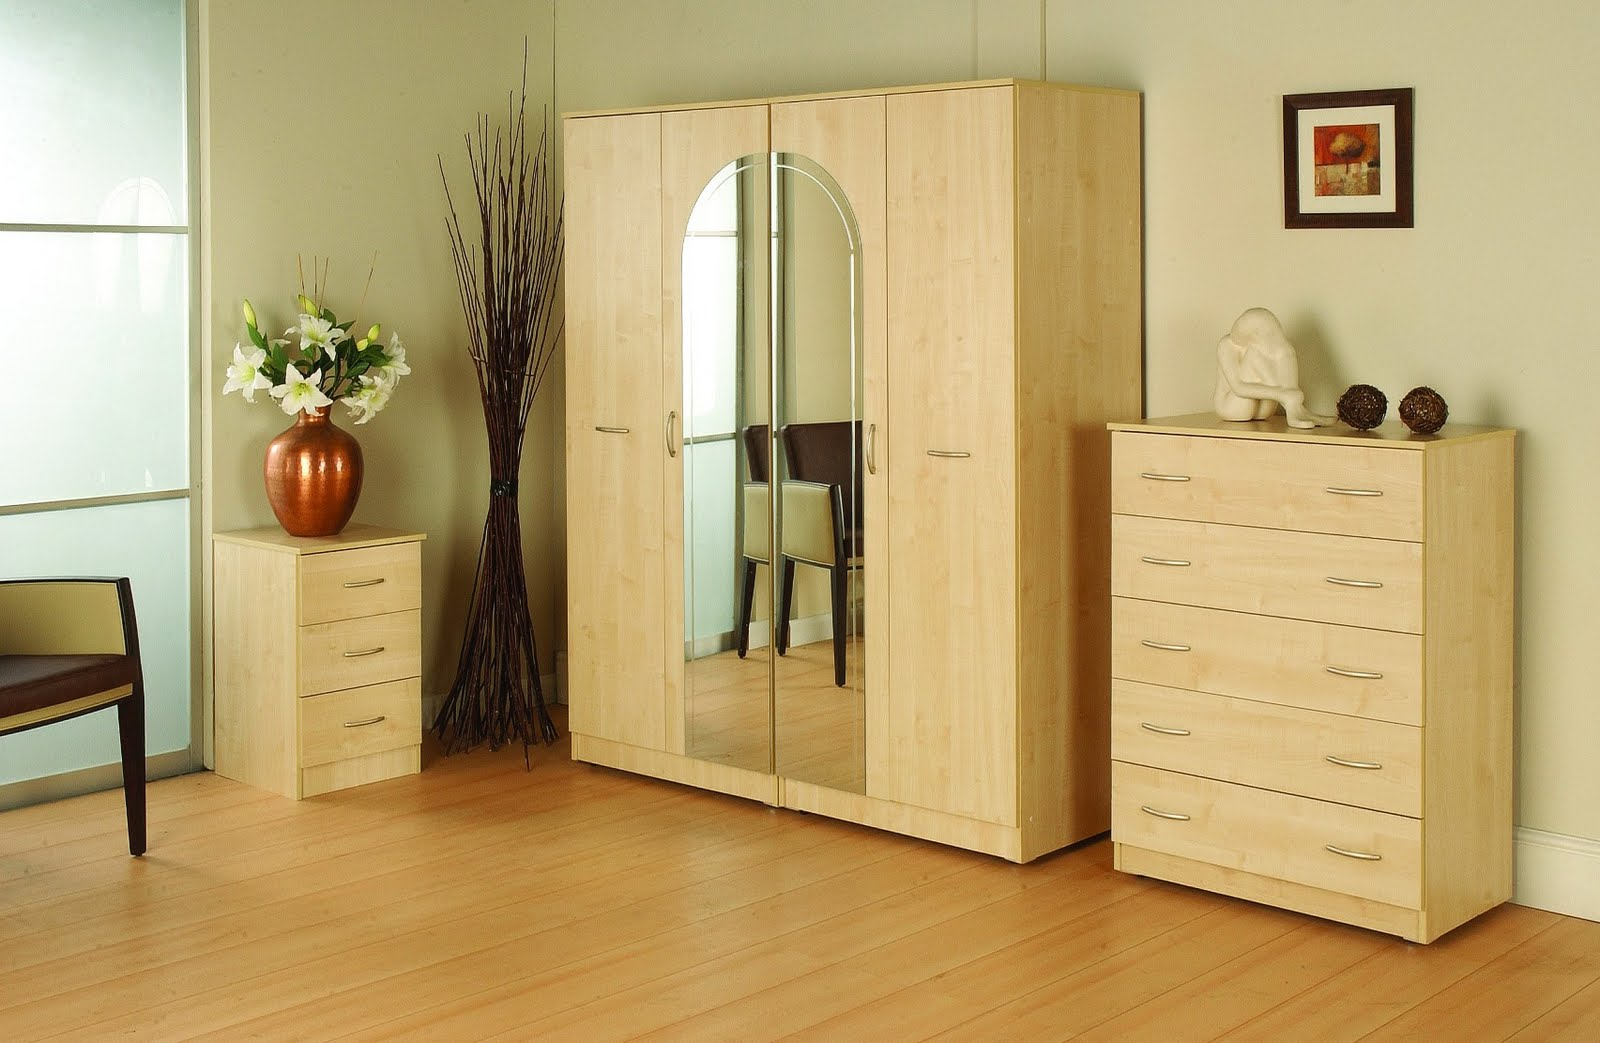 Remarkable Bedroom Wardrobe Design Ideas 1600 x 1043 · 163 kB · jpeg